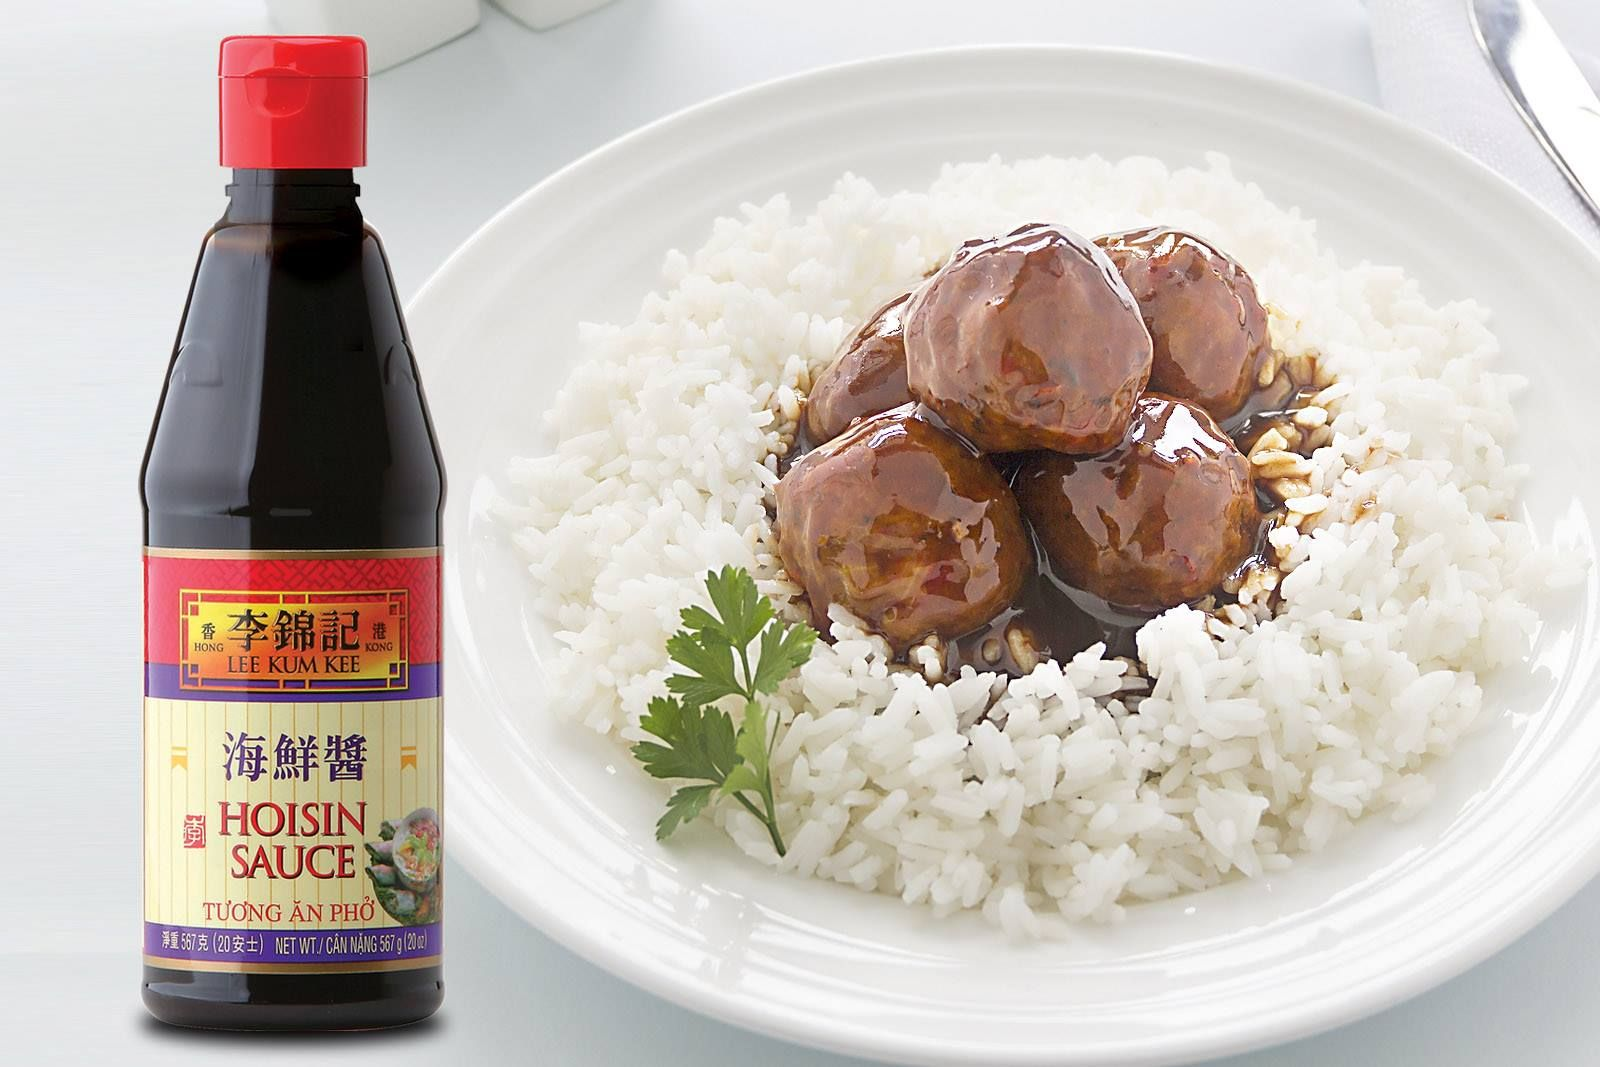 Switch things up by cooking meatballs with Hoisin Sauce! Put over rice and you have a flavorful meal!